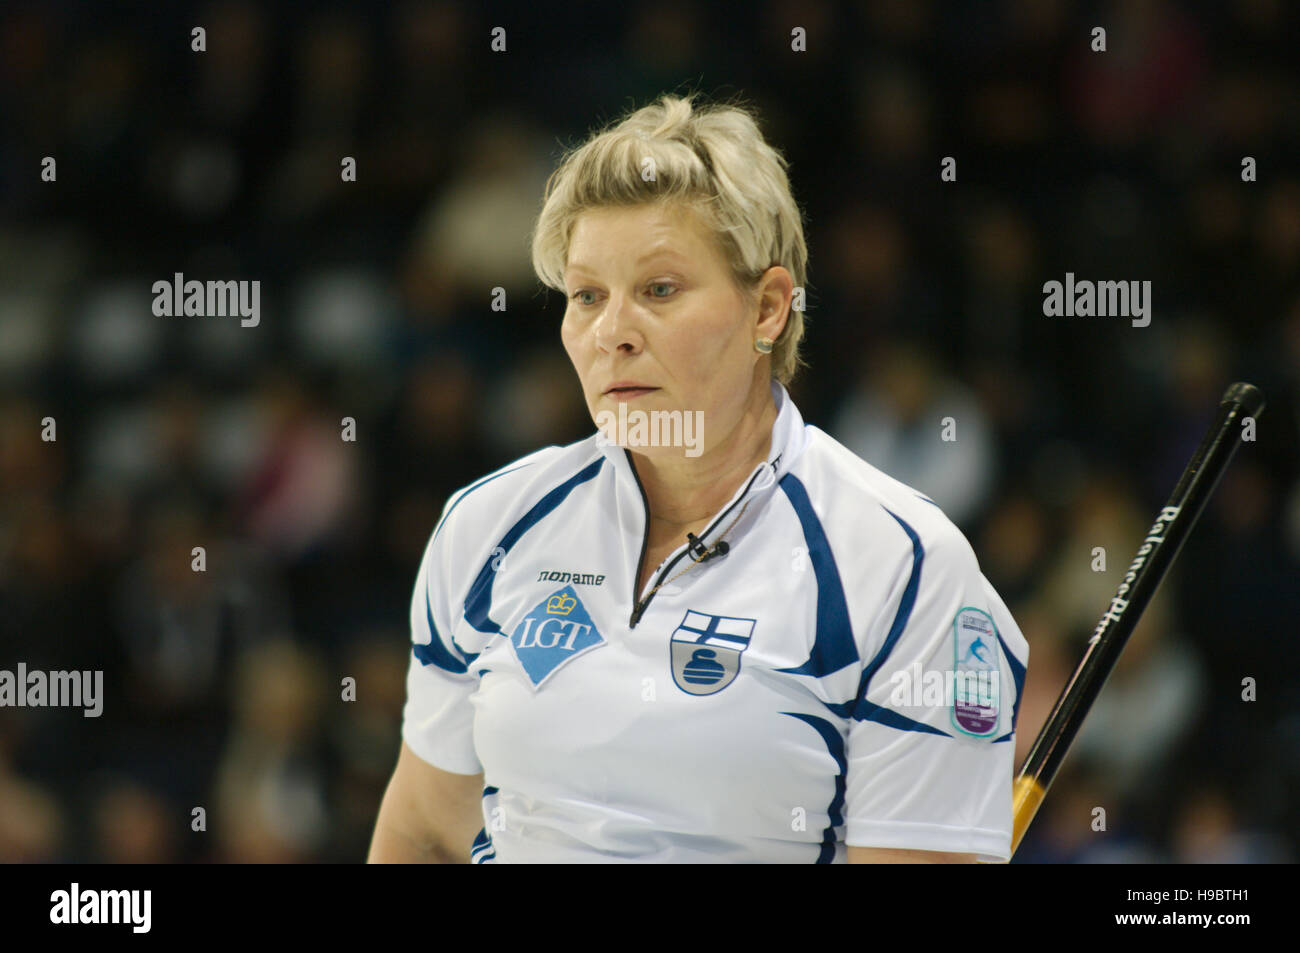 Braehead Arena, Renfrewshire, Scotland, 22 November 2016. Anne Malmi, skip of Finland, playing in the  Le Gruyère - Stock Image